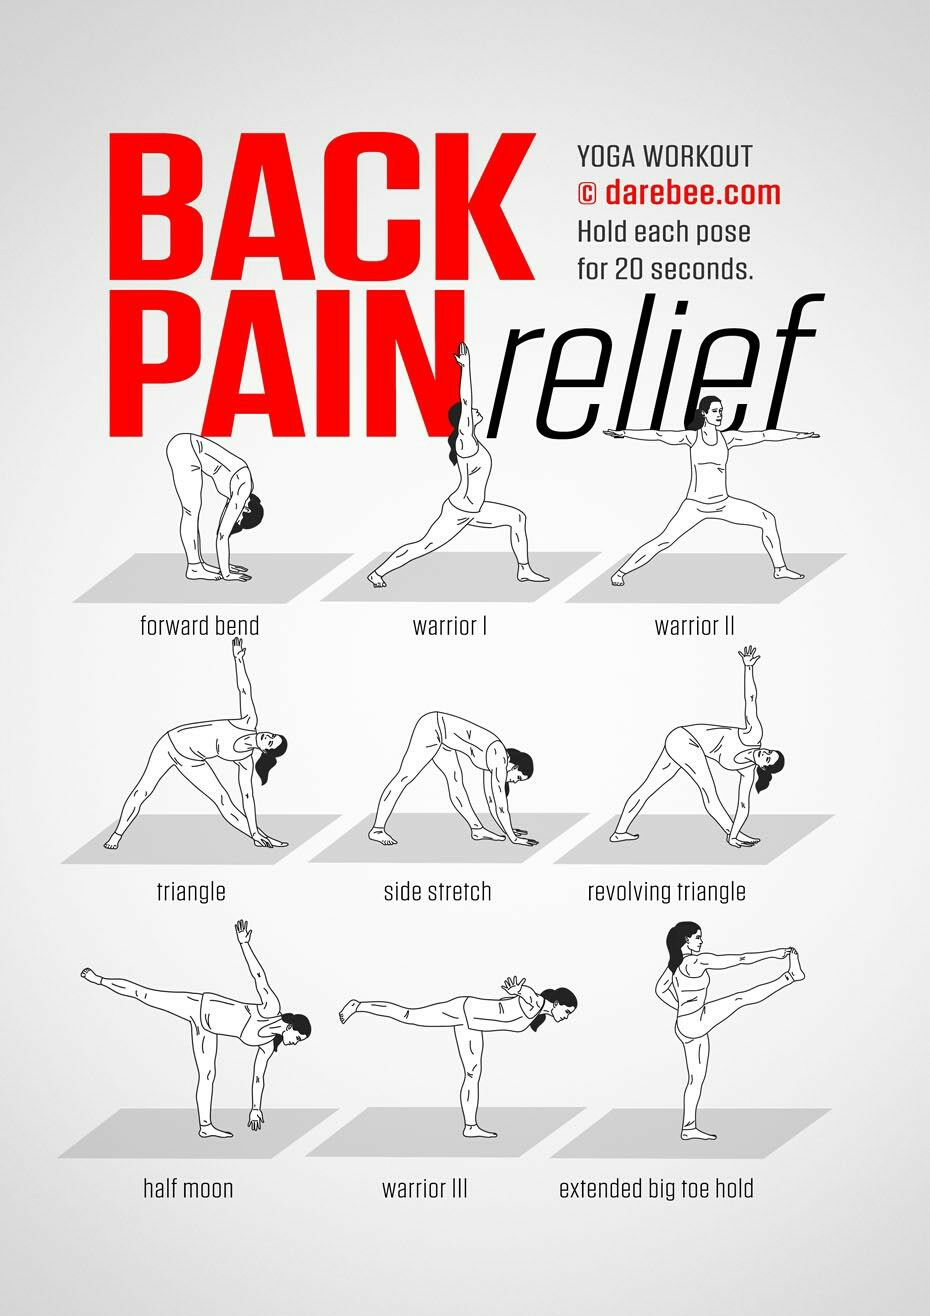 Darebee On Twitter Quot Workout Of The Day Back Pain Relief